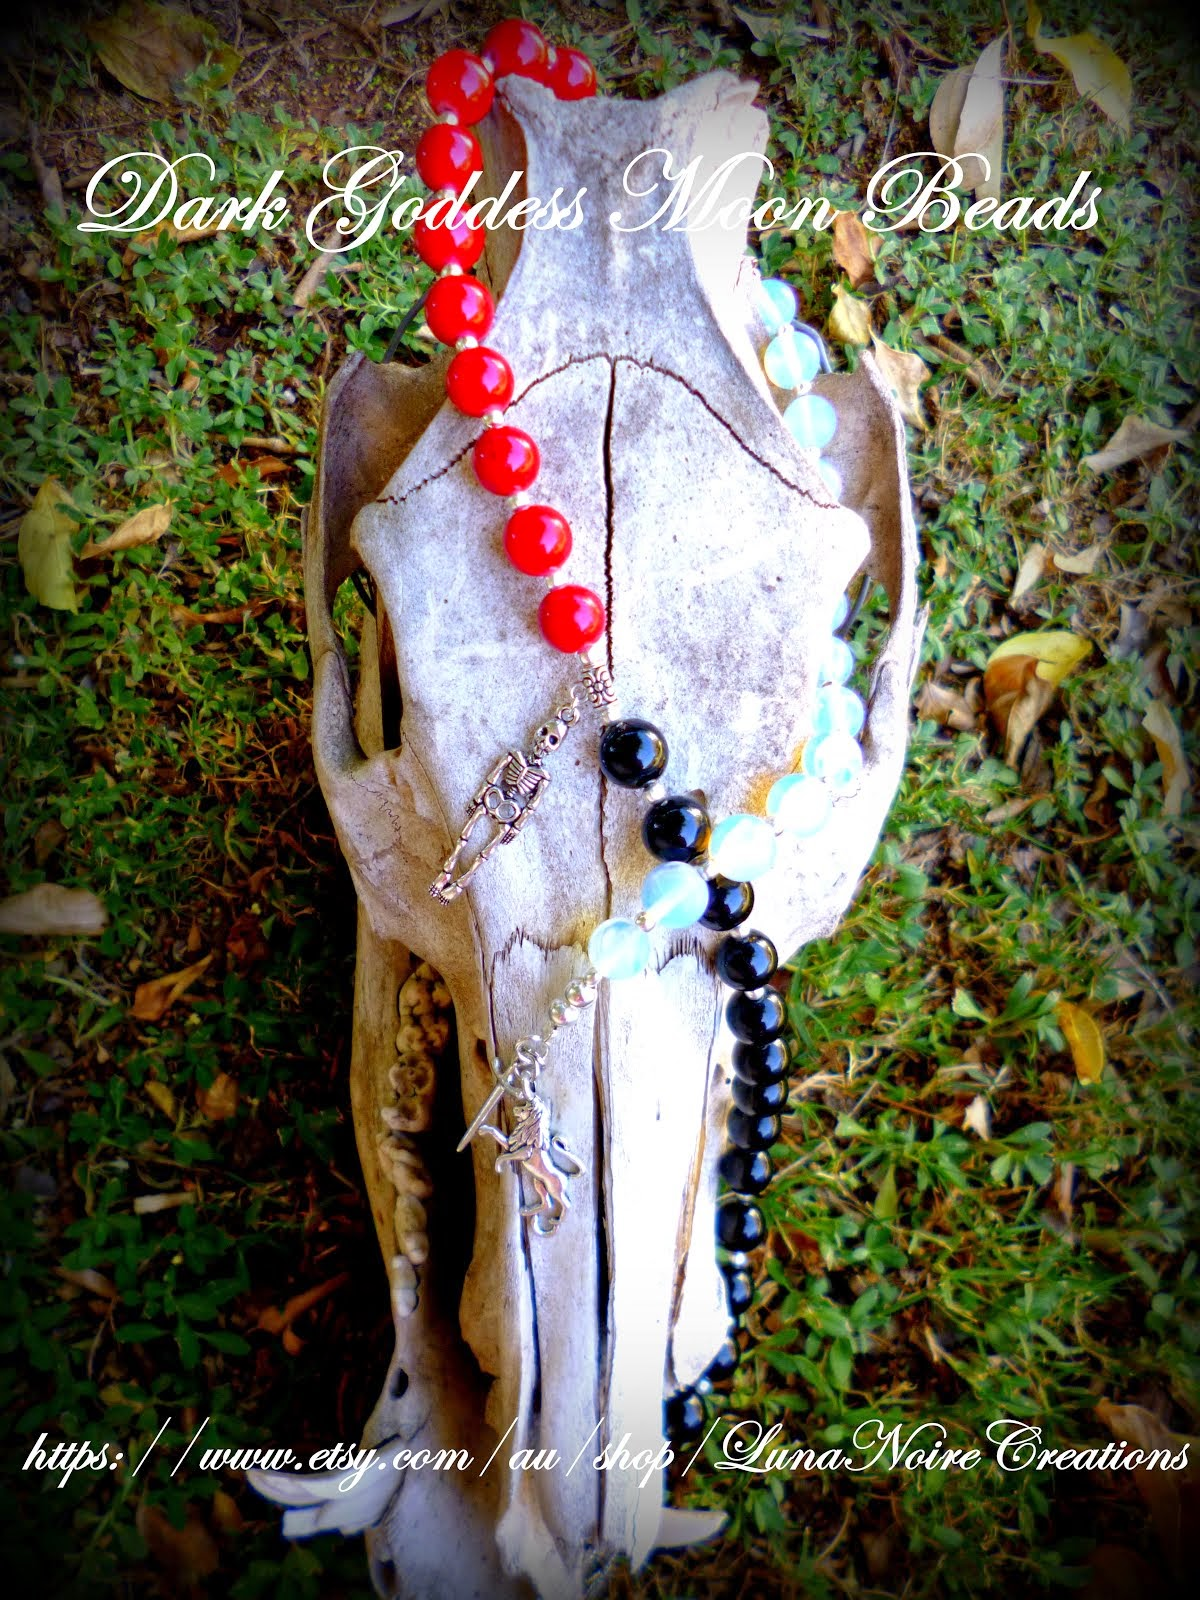 Etsy Store: Devotional Beads and Treasures